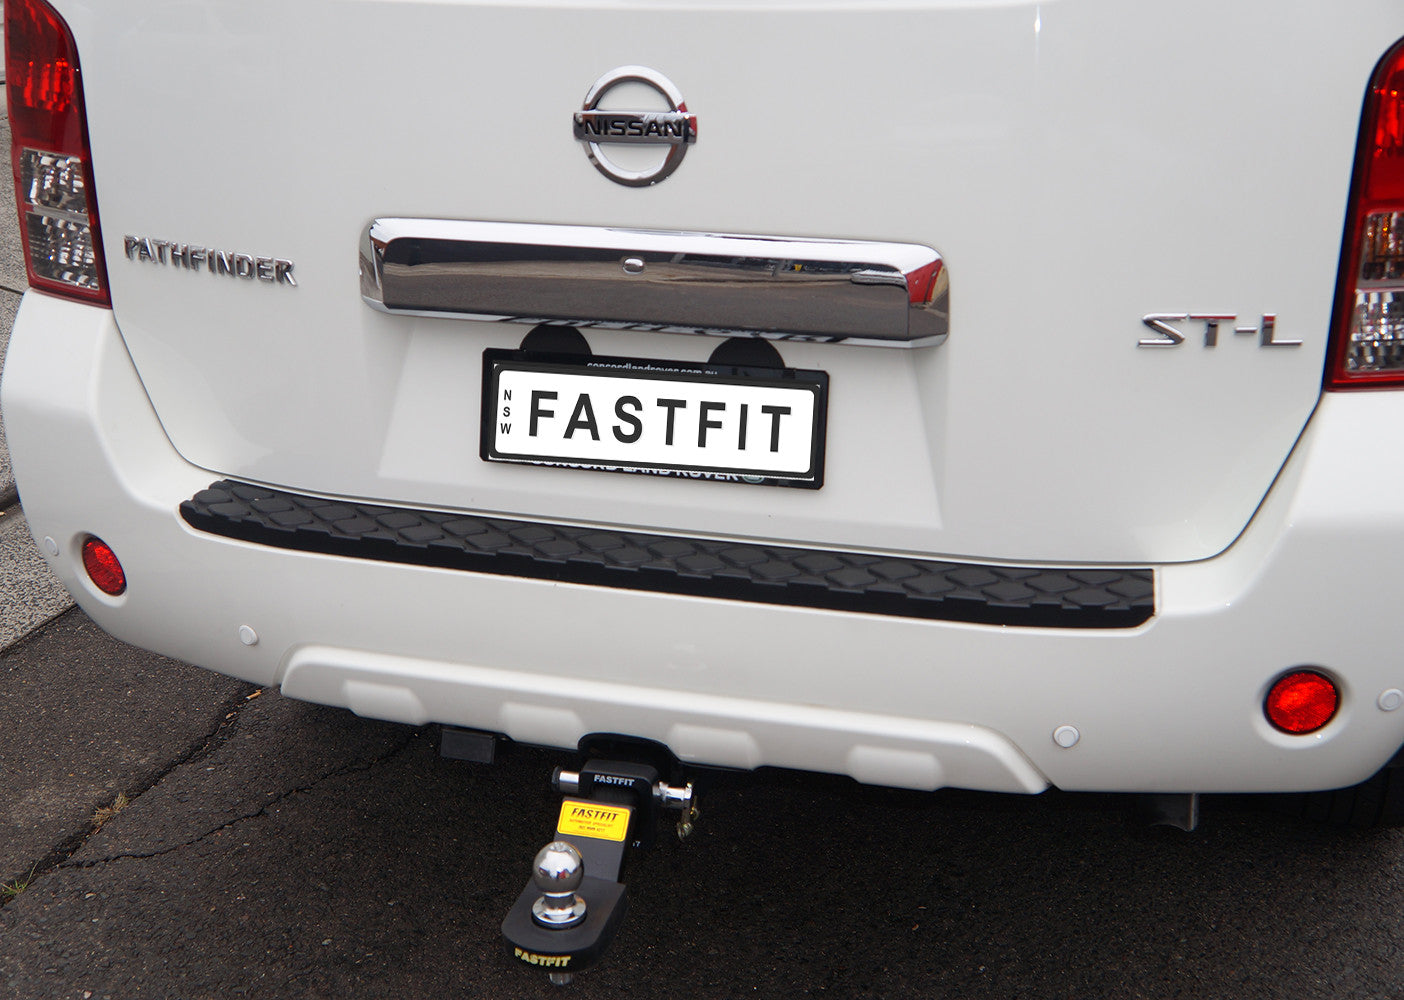 Fastfit Heavy Duty Tow Bar To Suit Nissan Pathfinder Wagon